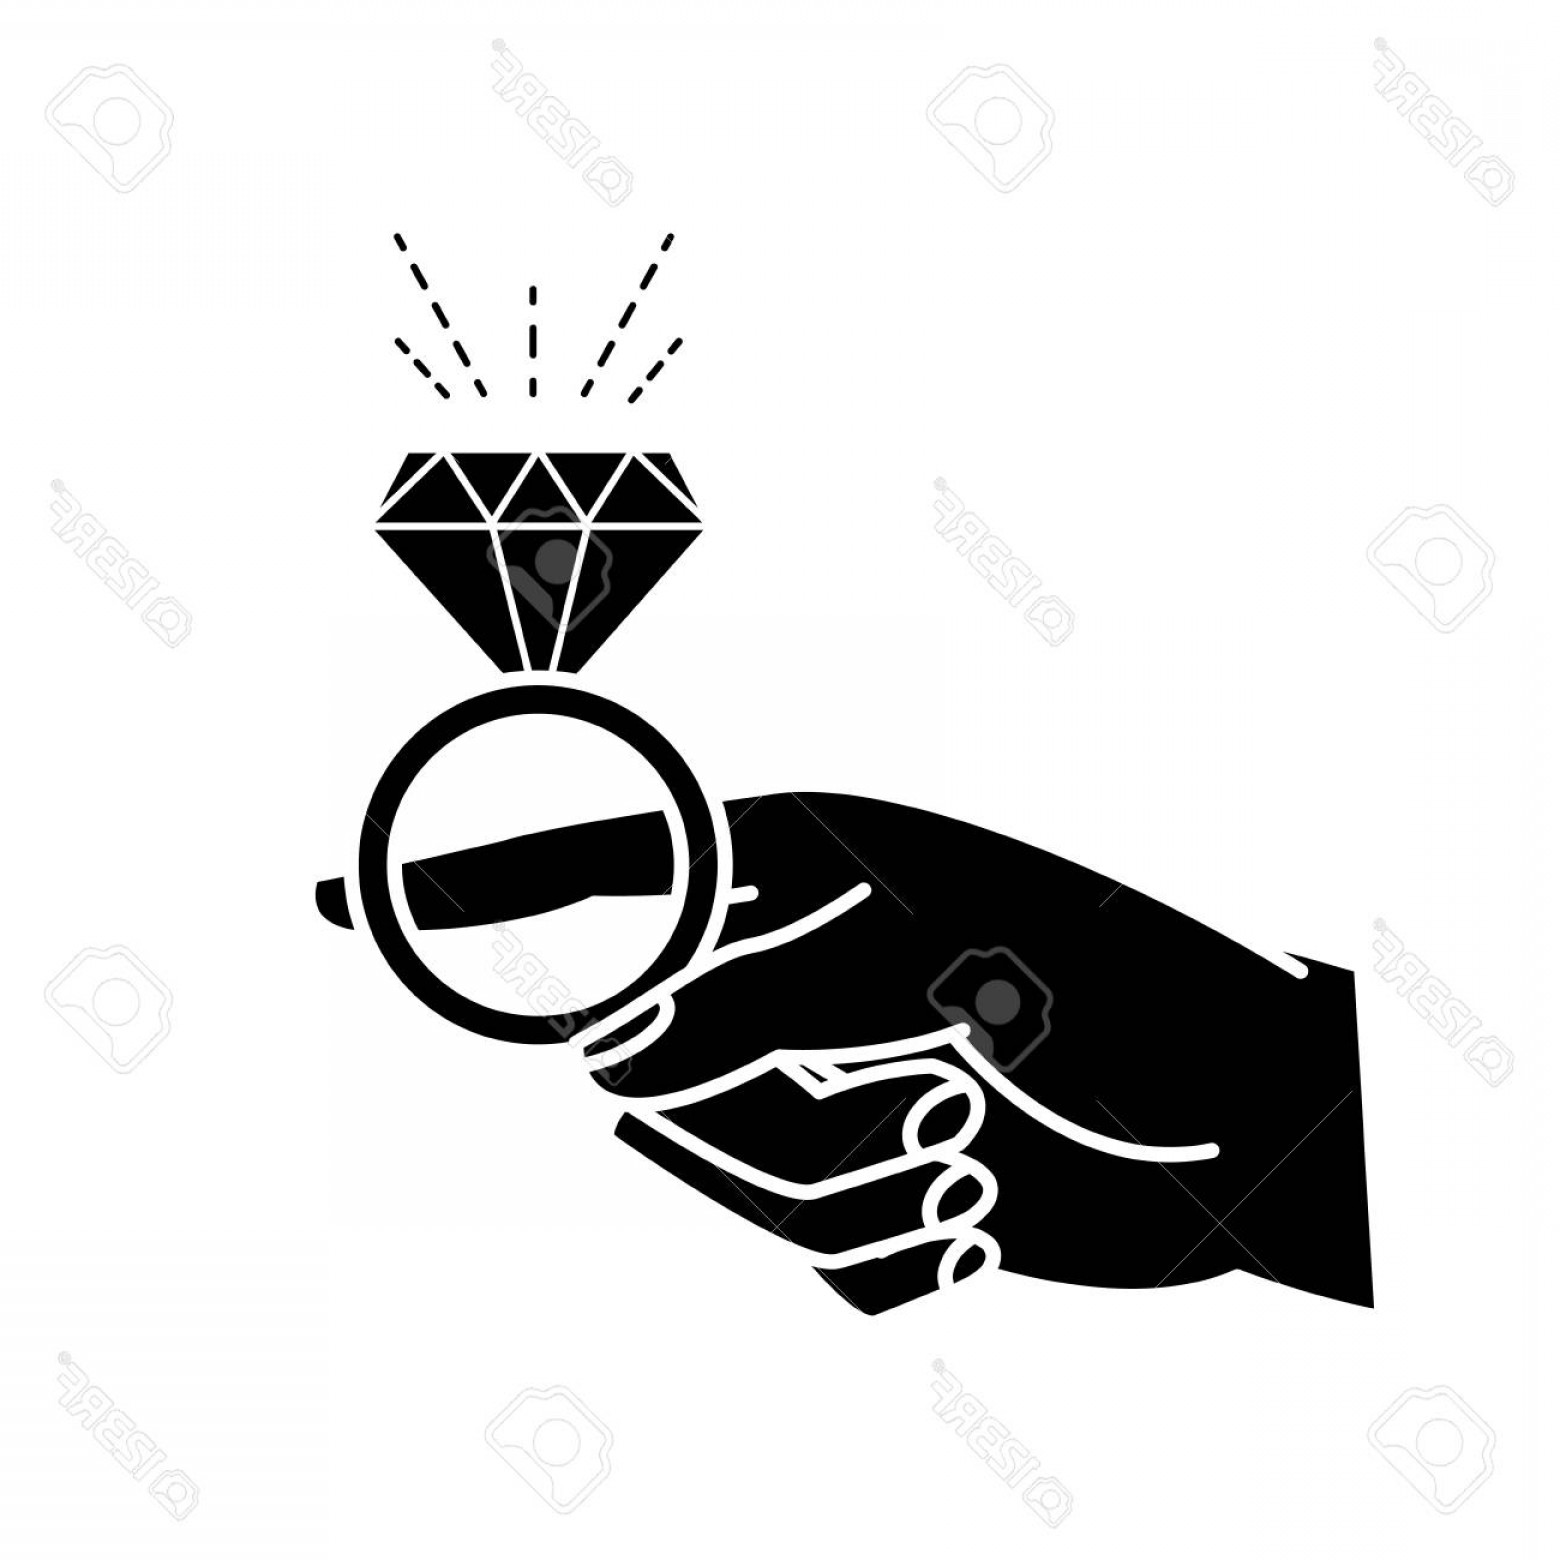 Hand With Ring Silhouette Vector: Photostock Vector Silhouette Of Woman Hand With Engagement Ring Diamond